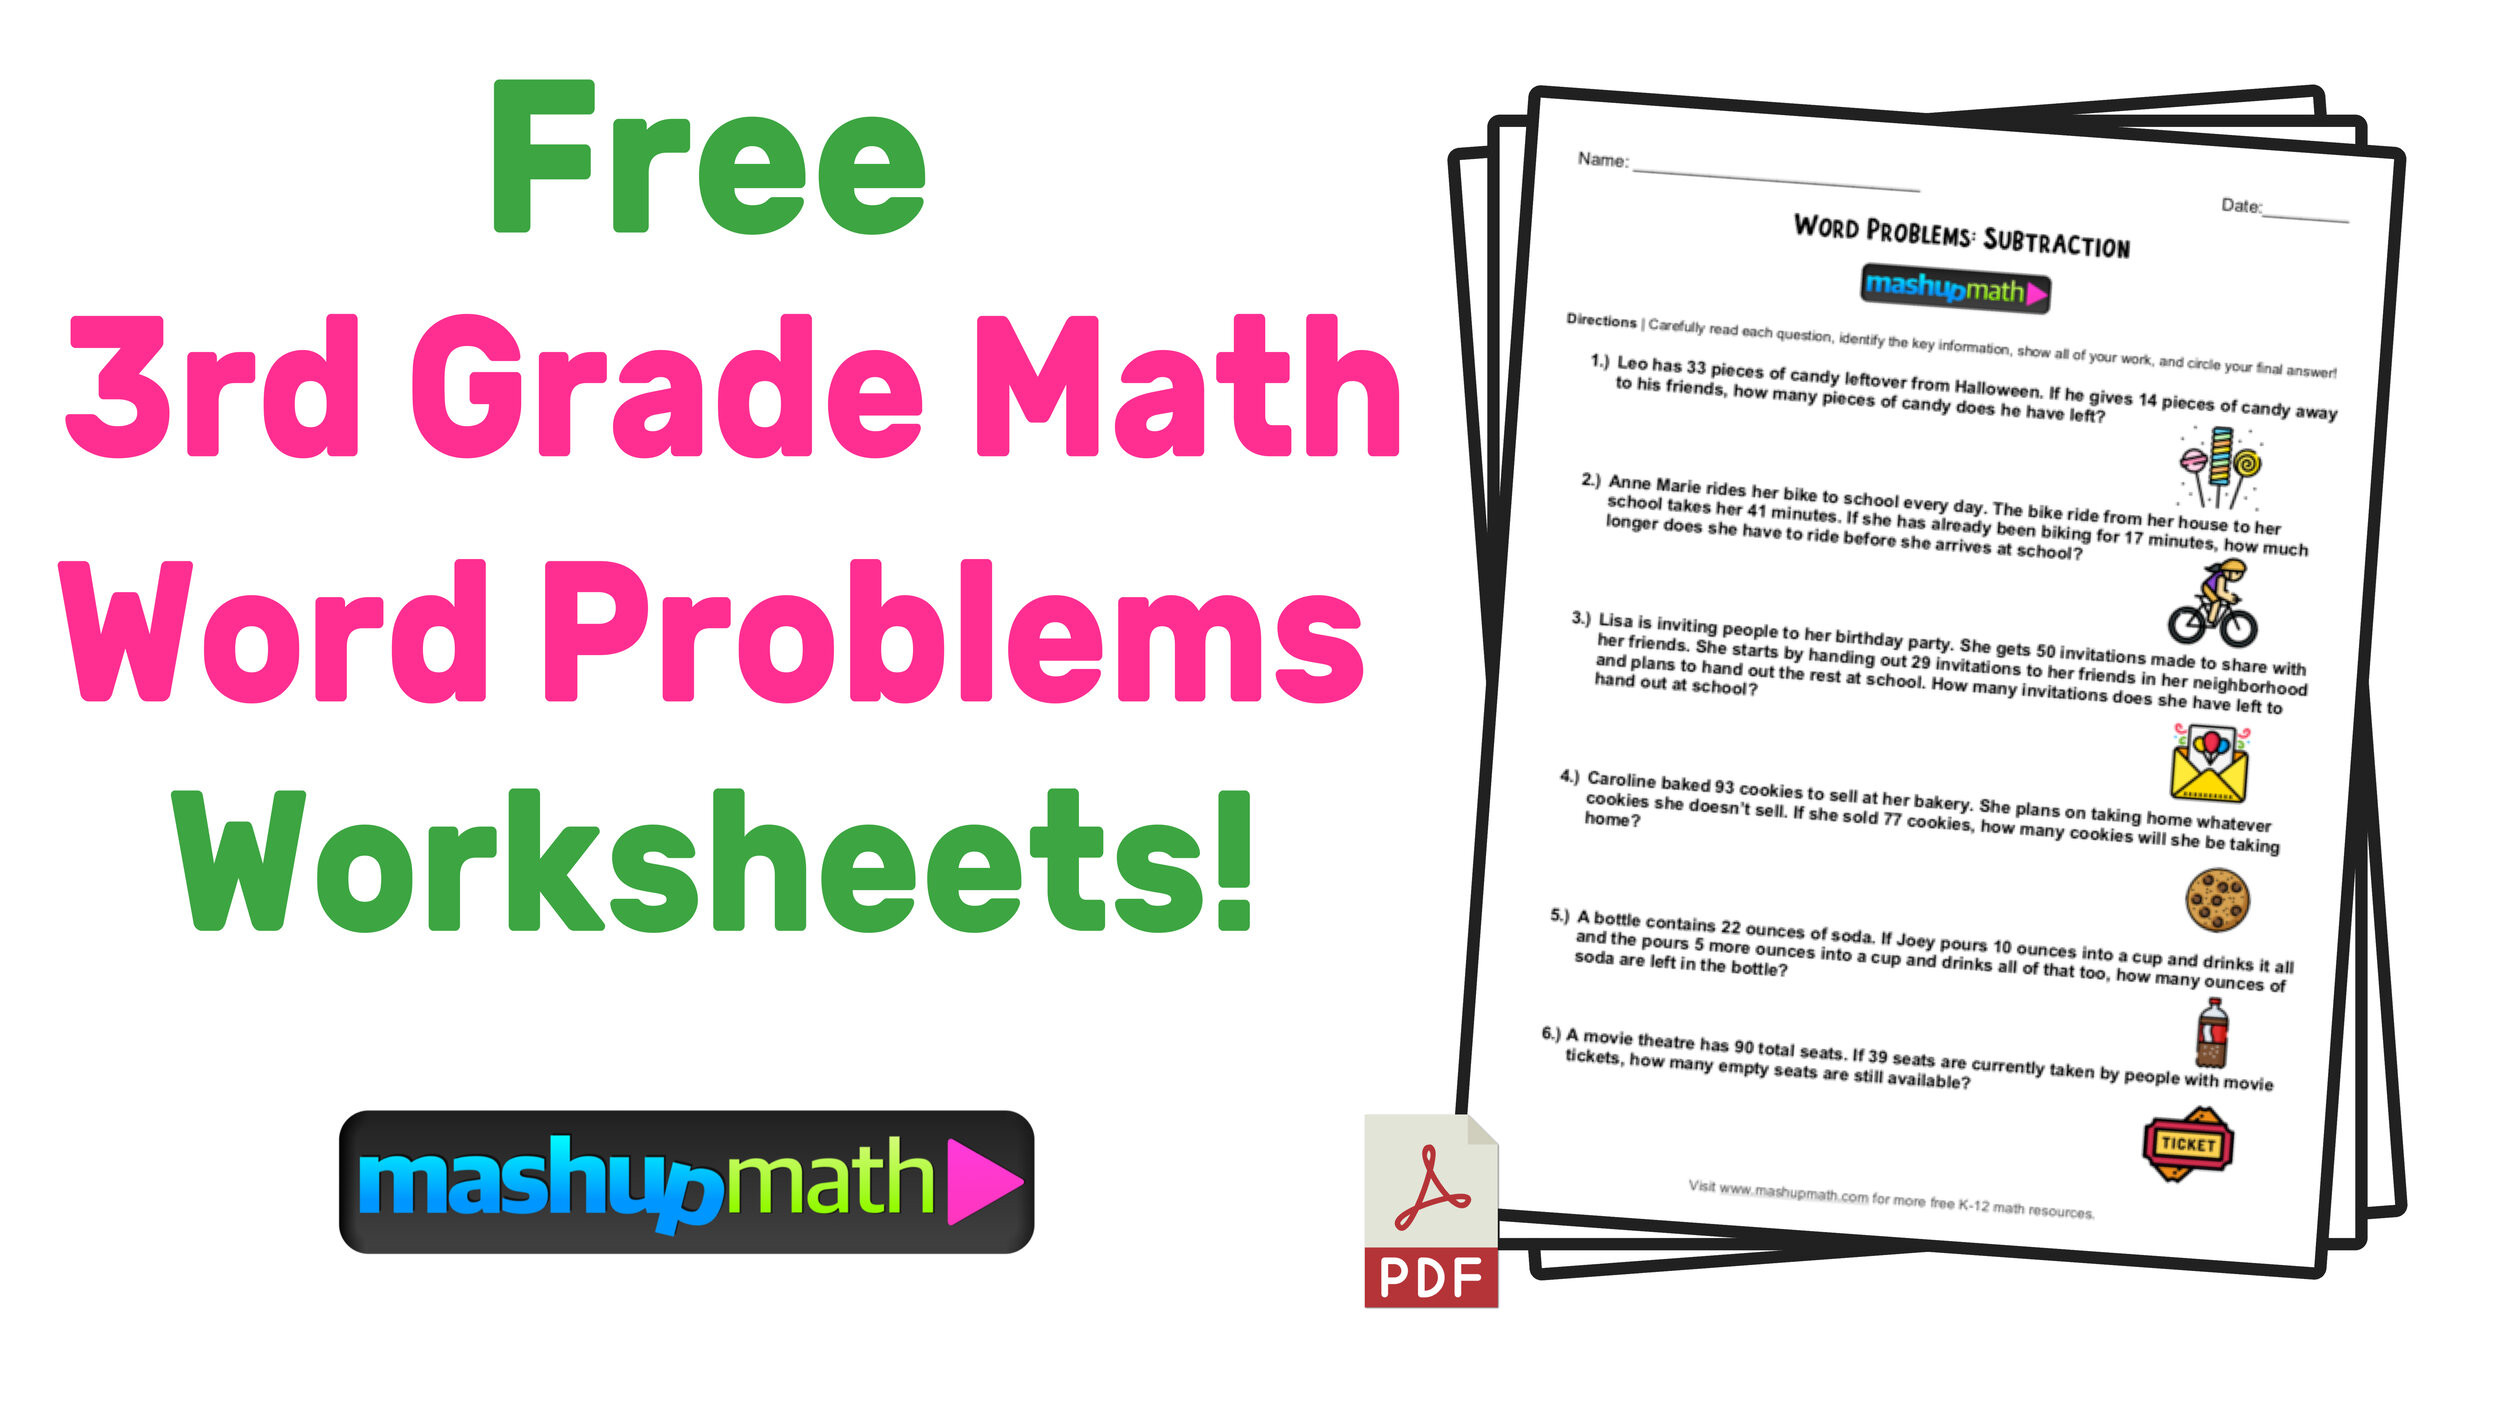 Measurement Worksheet 3rd Grade 3rd Grade Math Word Problems Free Worksheets with Answers